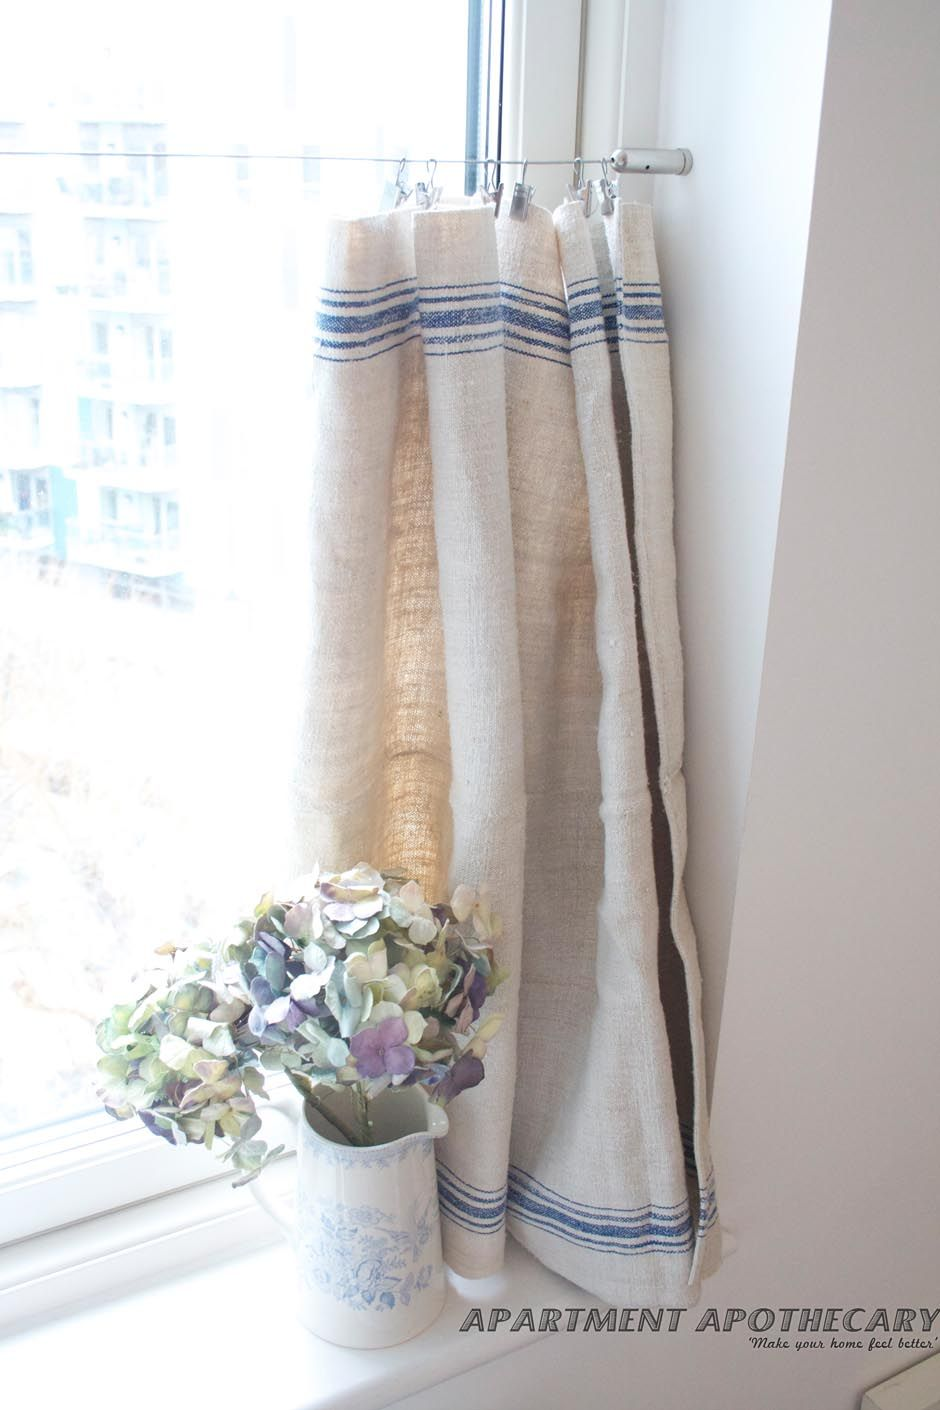 Delightful frenchstyle nosew curtain using one grain sack ebay